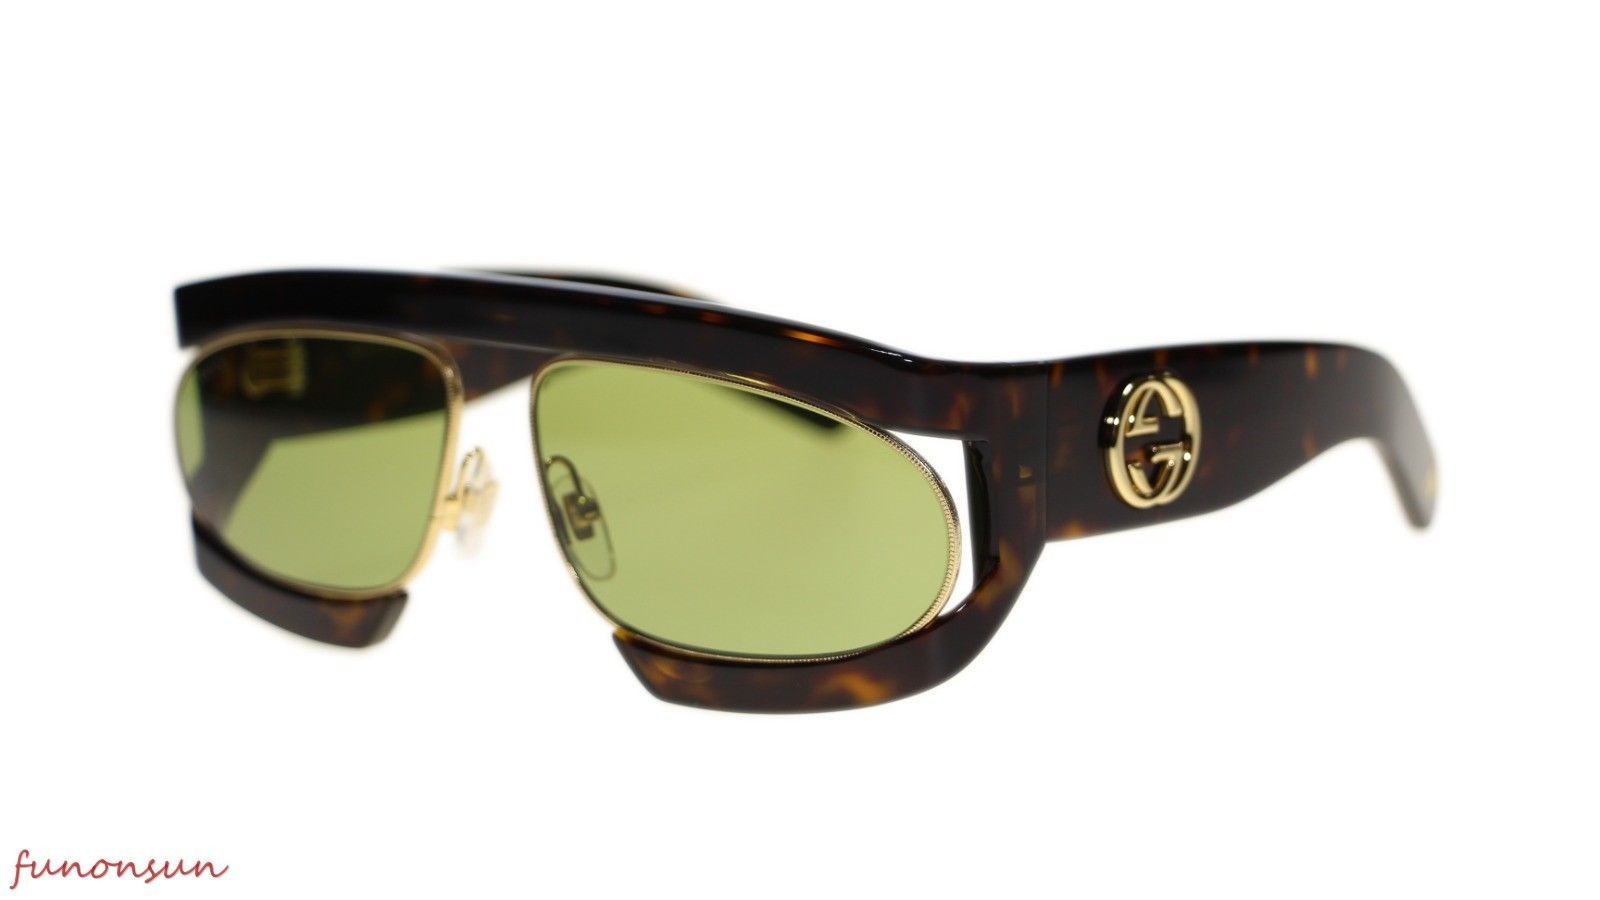 29e87397715 10. 10. Previous. New Gucci Women s Sunglasses GG0233S 002 Havana Gold  Green Lens 63mm Authentic